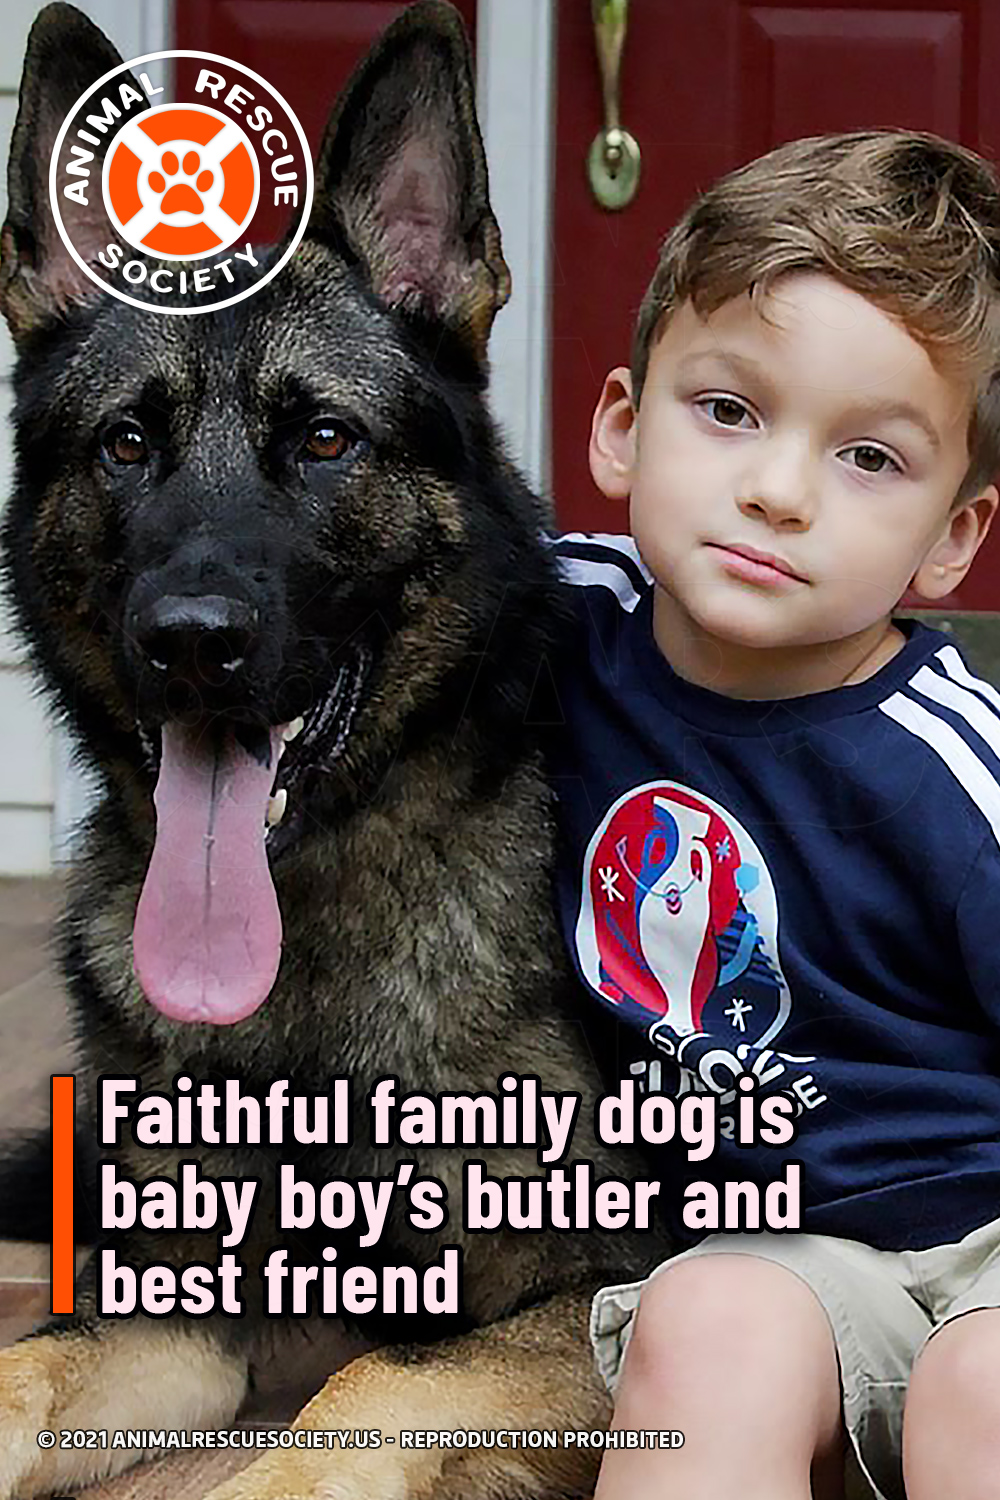 Faithful family dog is baby boy's butler and best friend